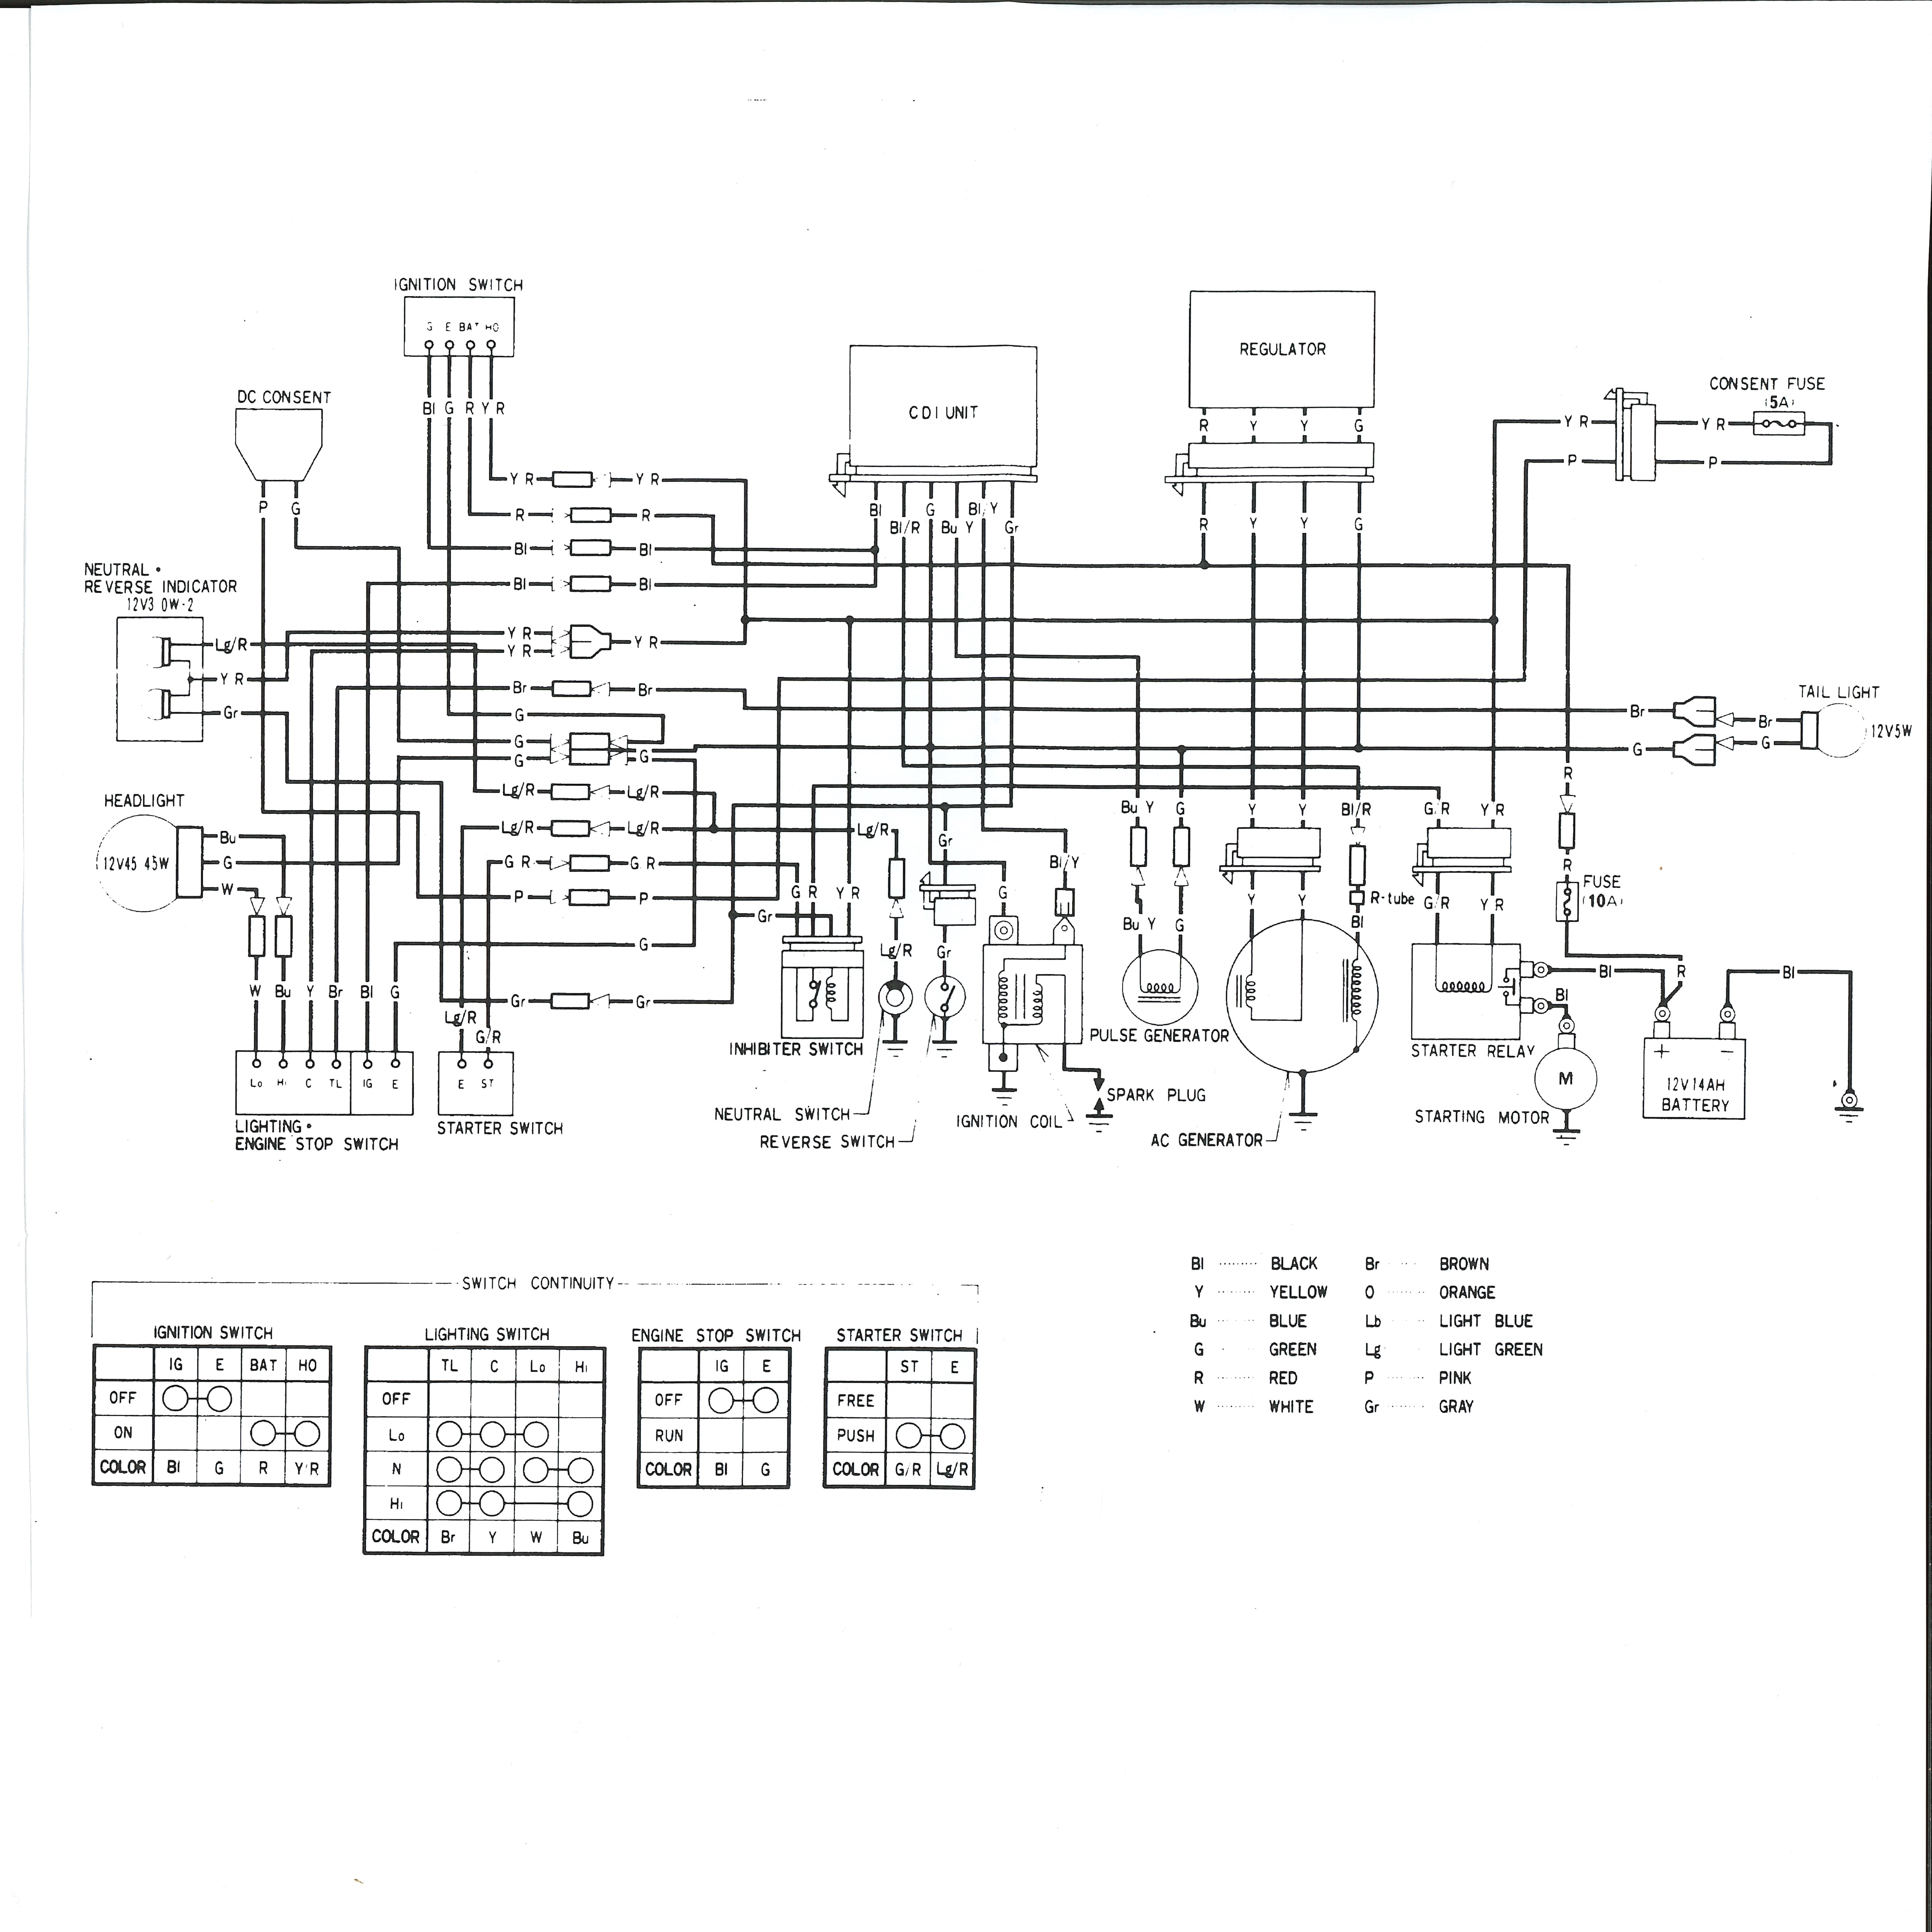 Wiring diagram 1986 honda big red dolgular cool honda big red 0 wiring diagram gallery best image engine asfbconference2016 Image collections